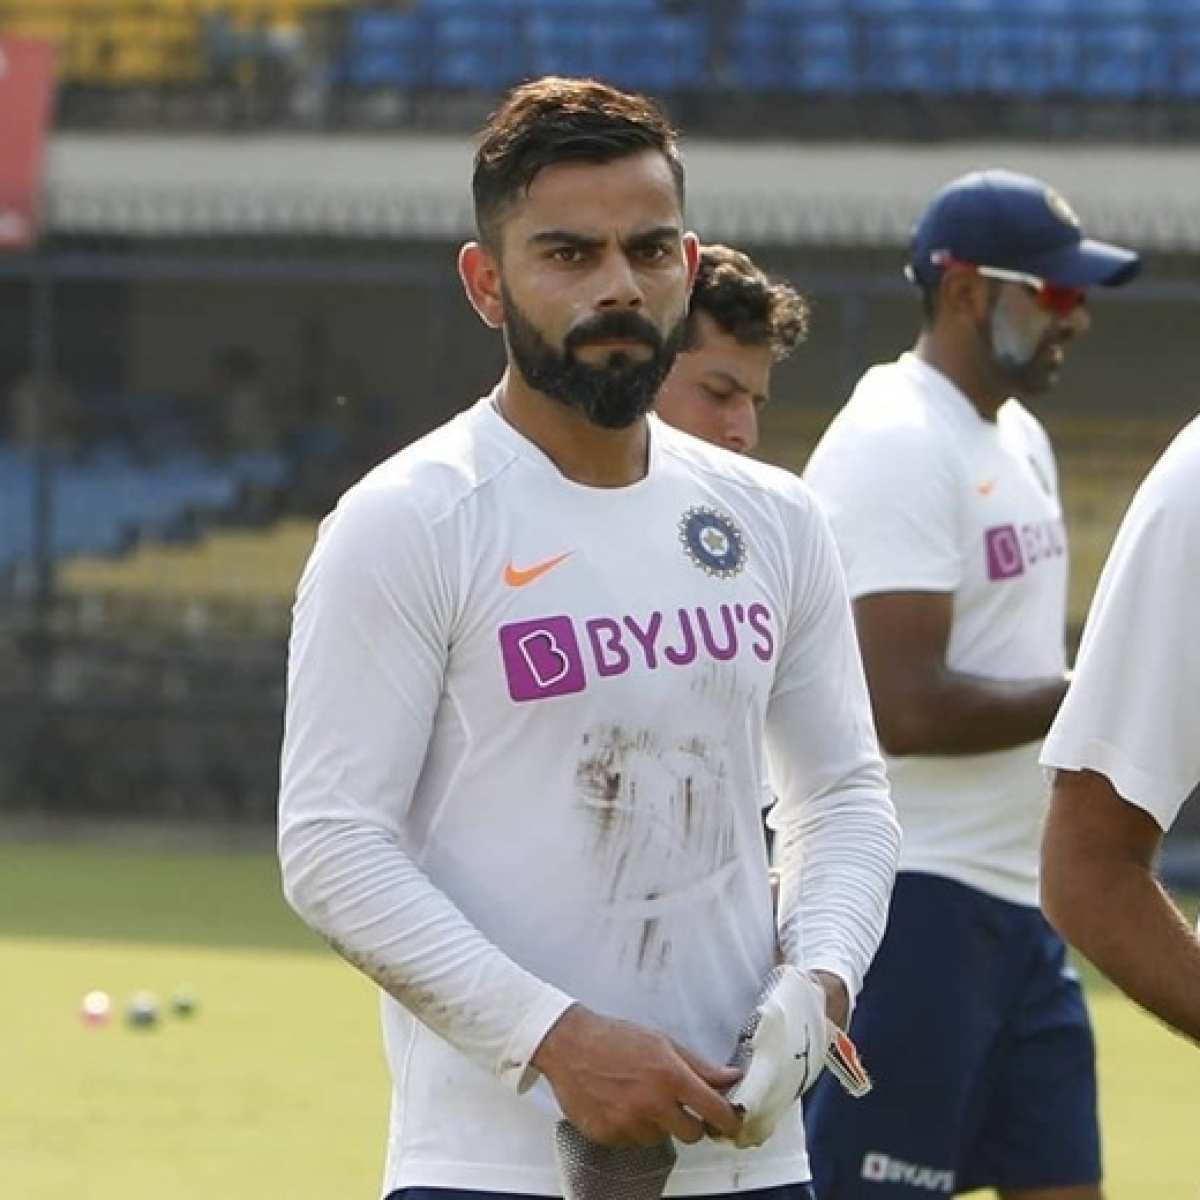 'Great to be back with boys': Virat Kohli returns from his break, shares training pictures of Bangladesh tests